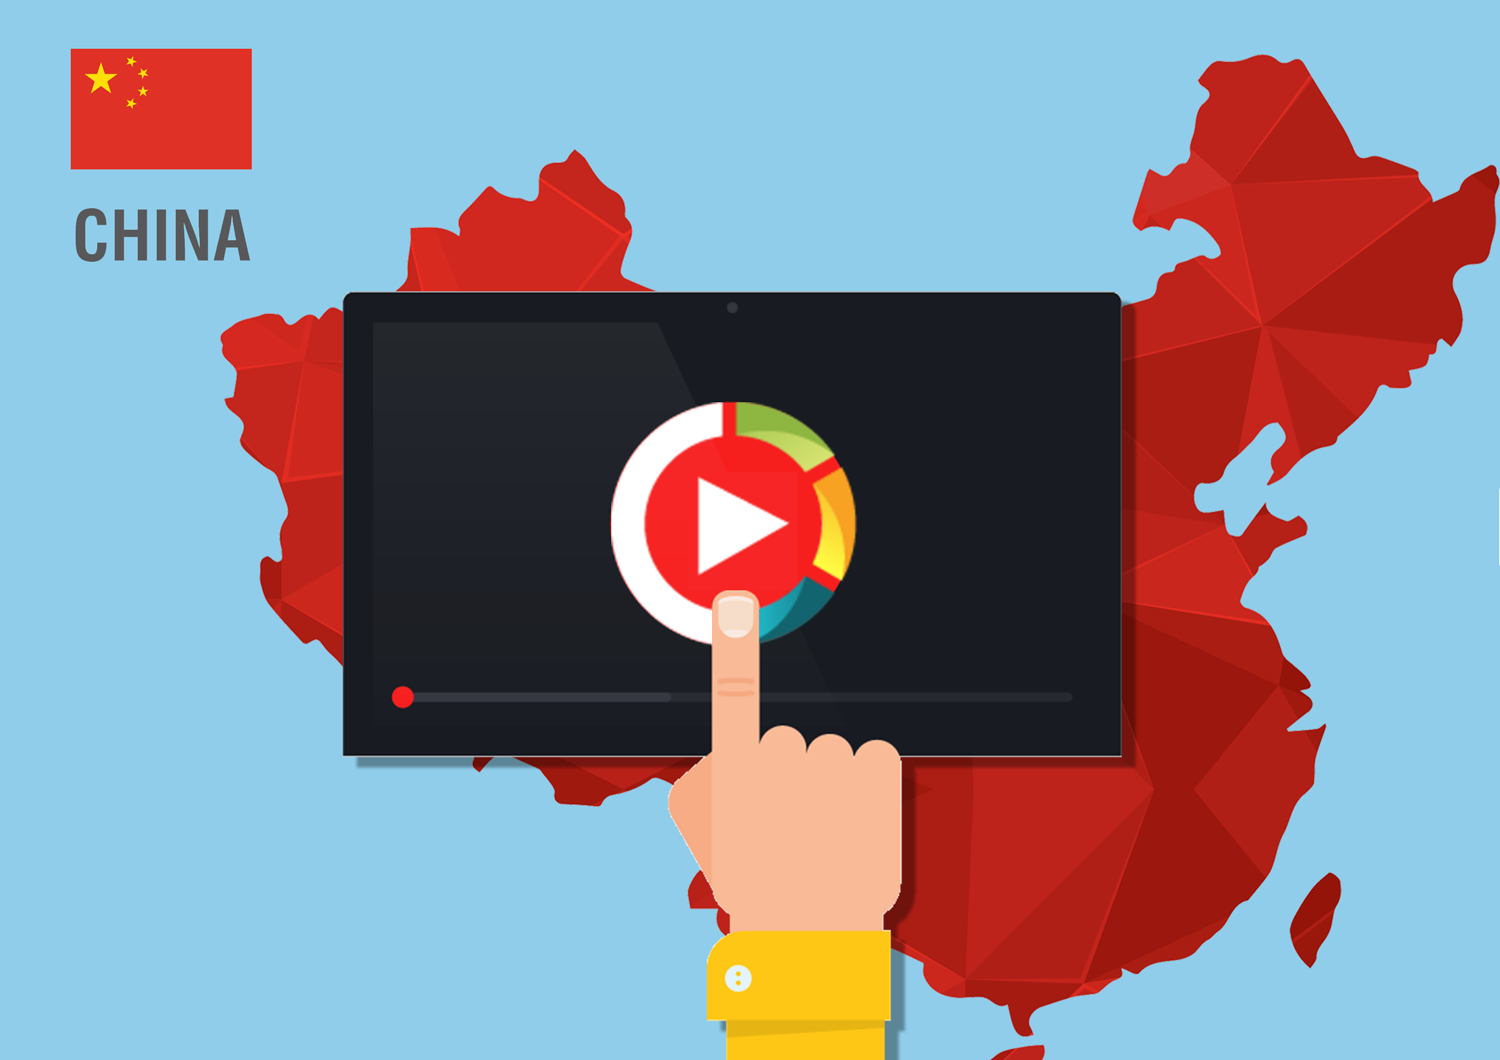 Video hosting and live streaming service that works inside China